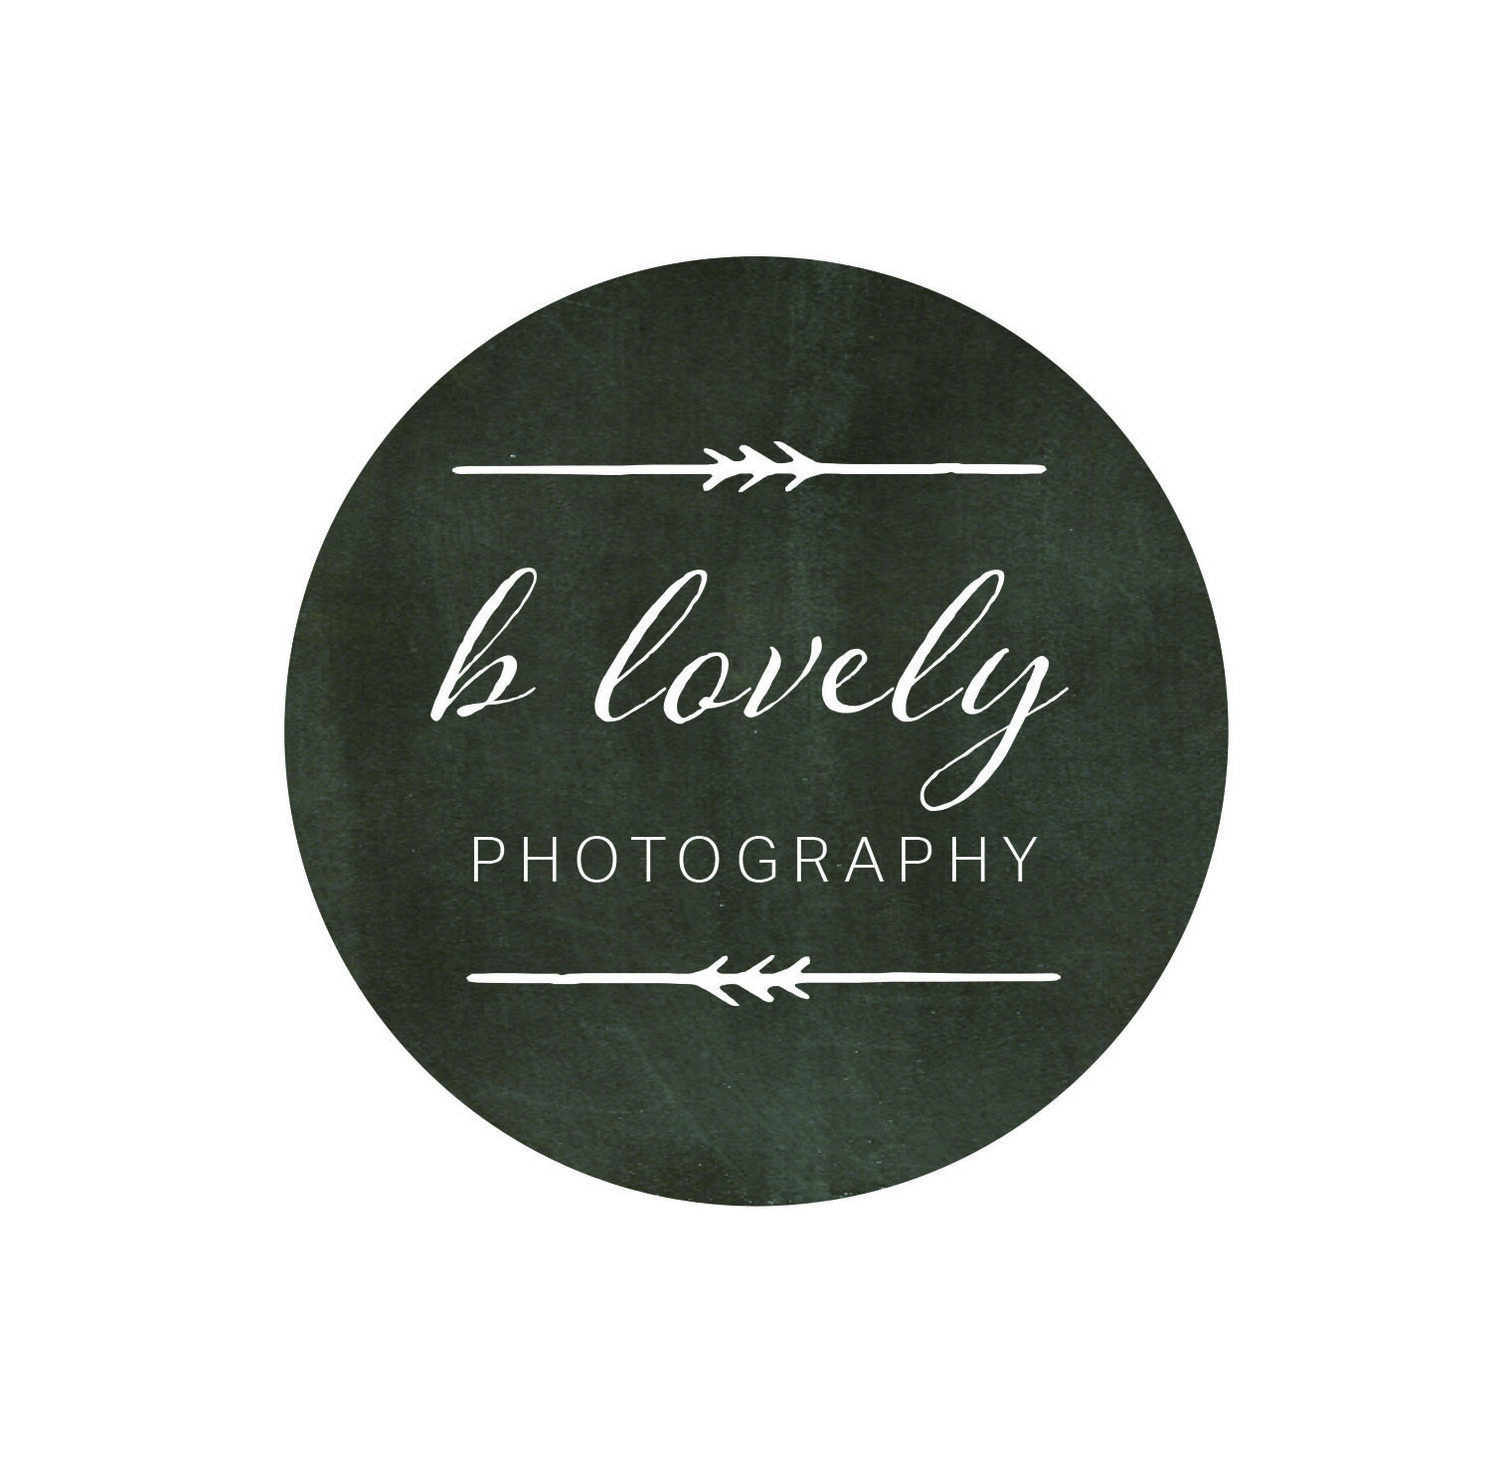 blovely photography